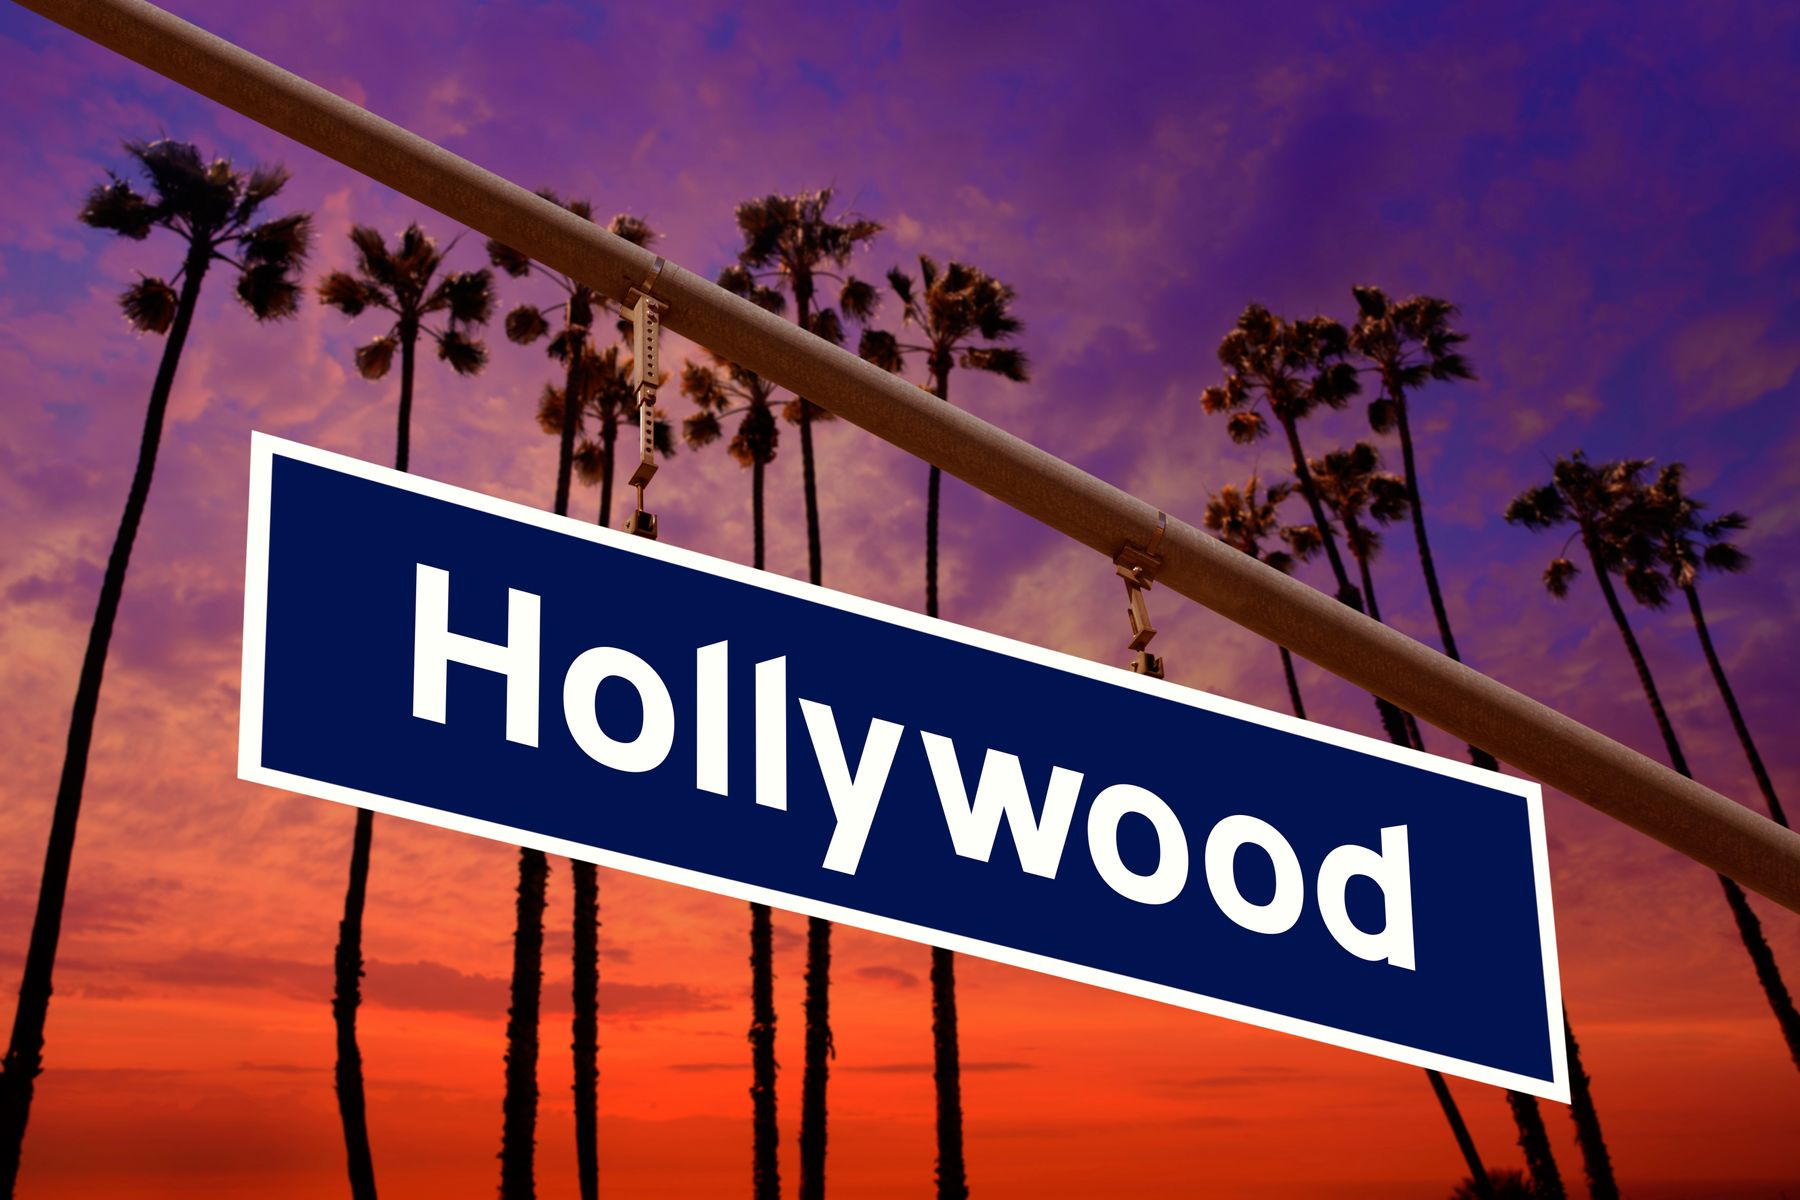 Fly from Hollywood